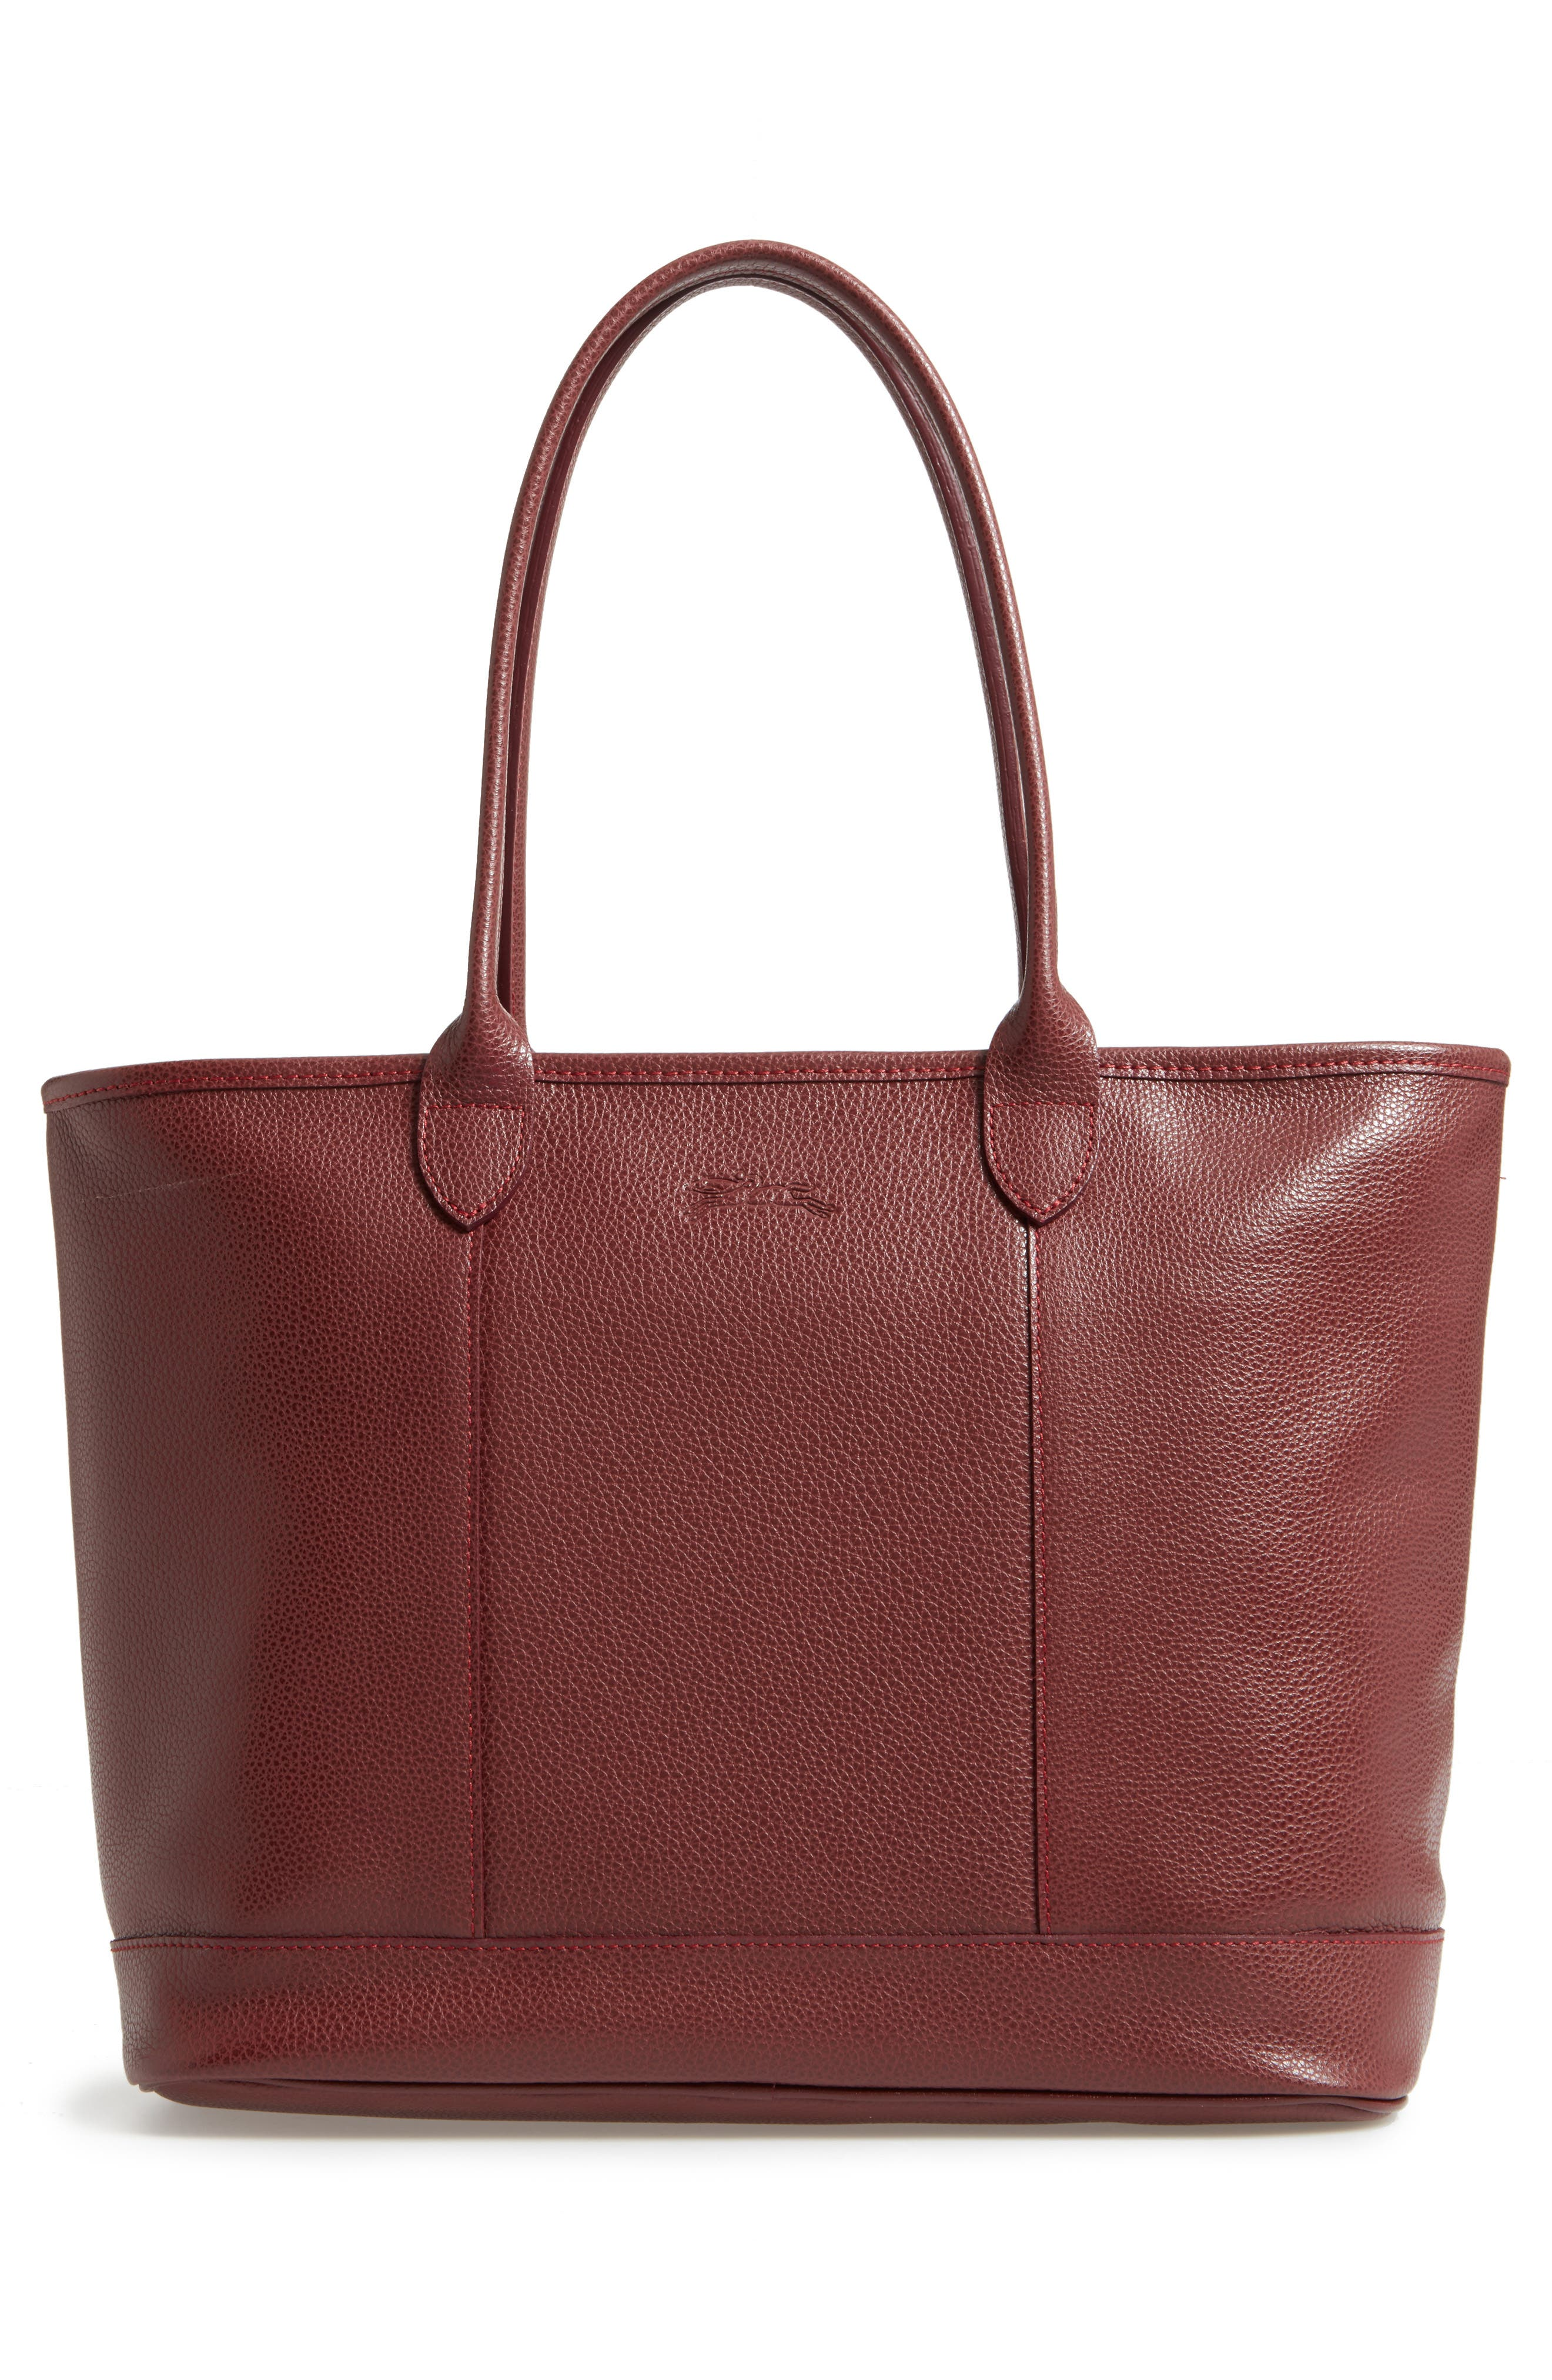 'Veau' Leather Tote,                             Alternate thumbnail 3, color,                             Red Lacquer